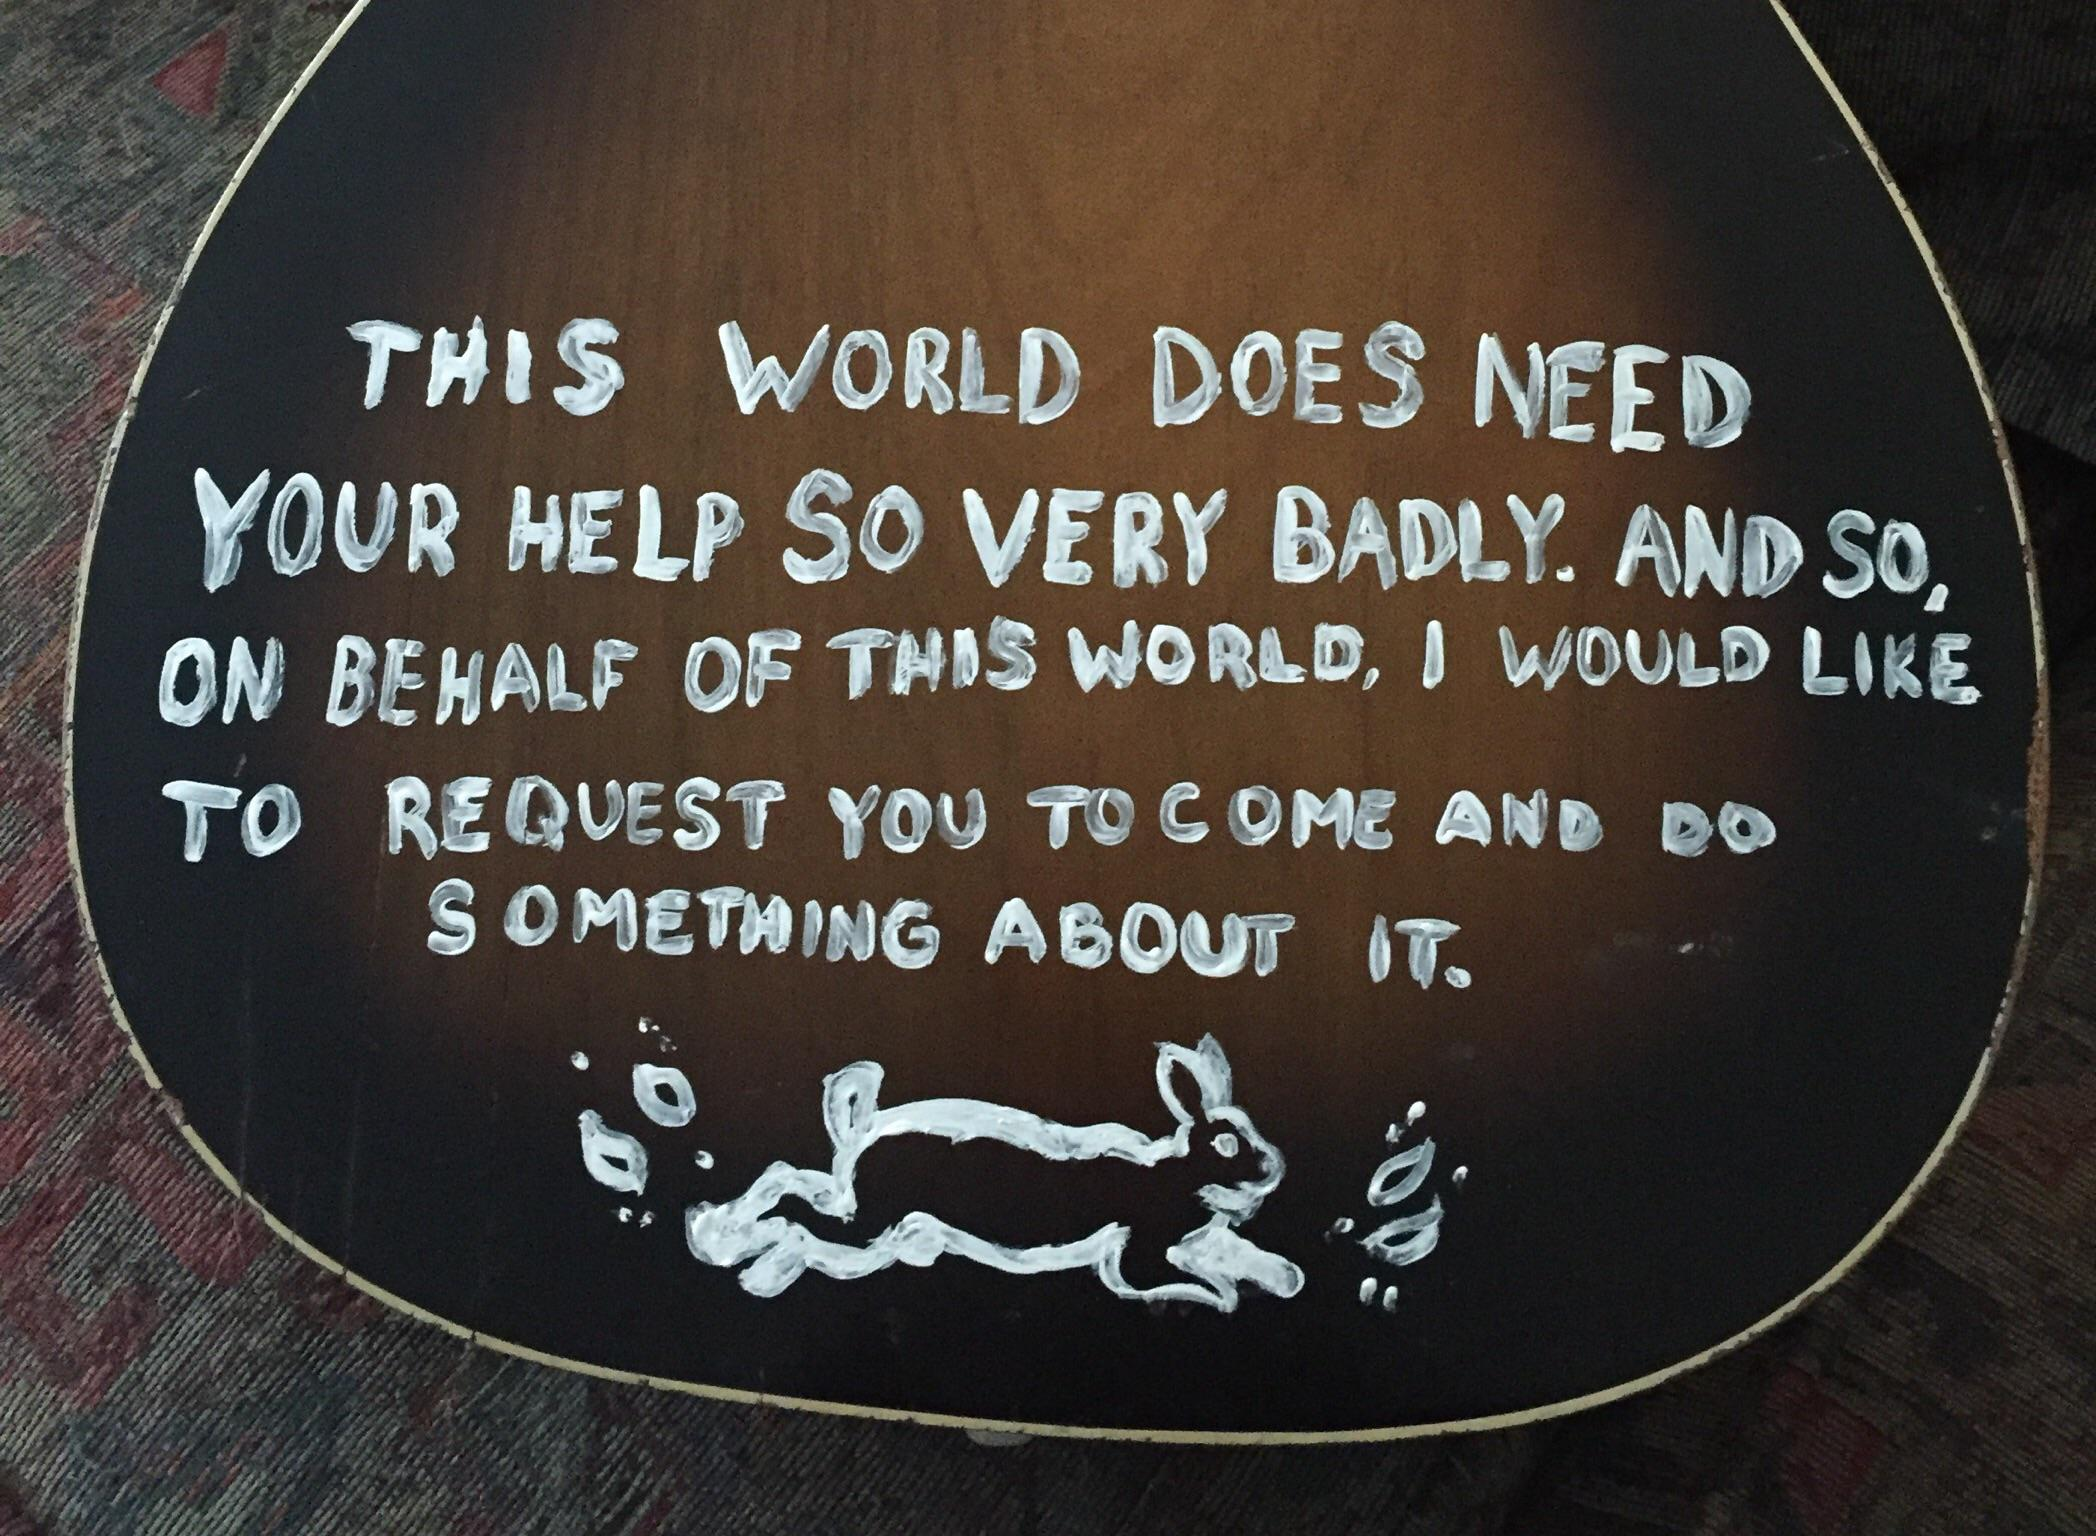 [Image] This world does need your help so very badly….